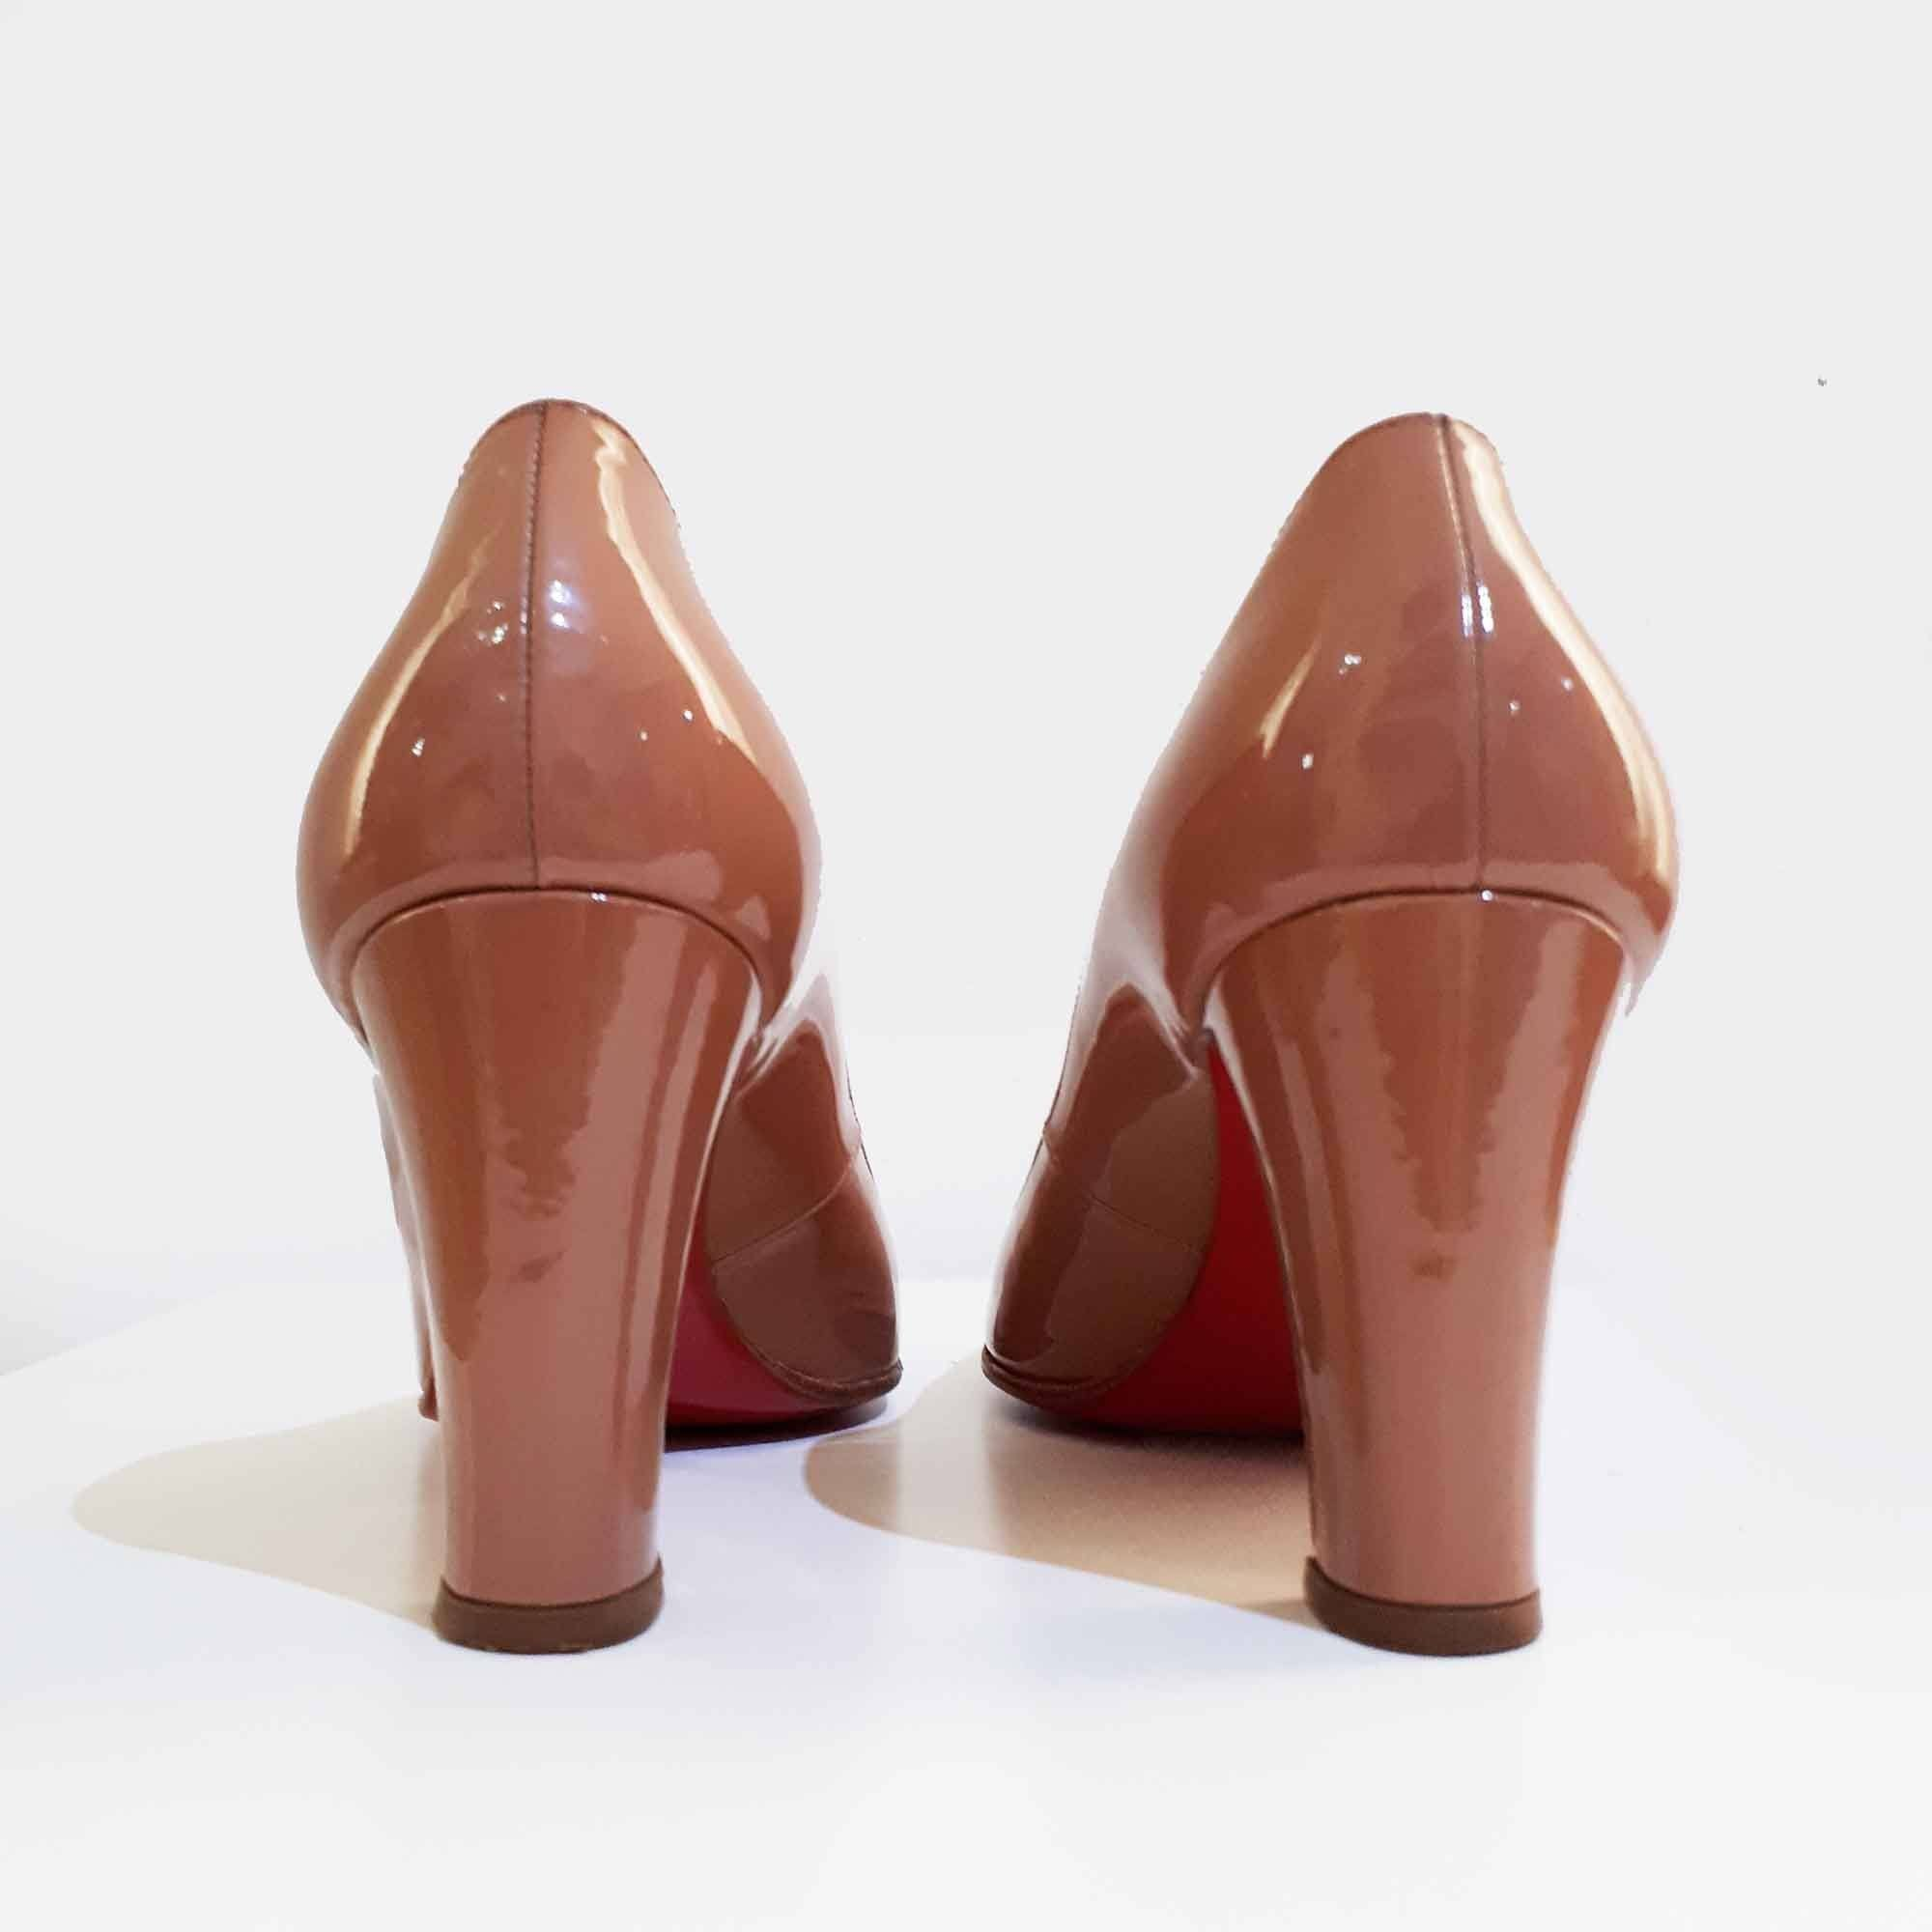 6c0aab85be5 Christian Louboutin Cadrilla 100 Patent Leather – Garderobe